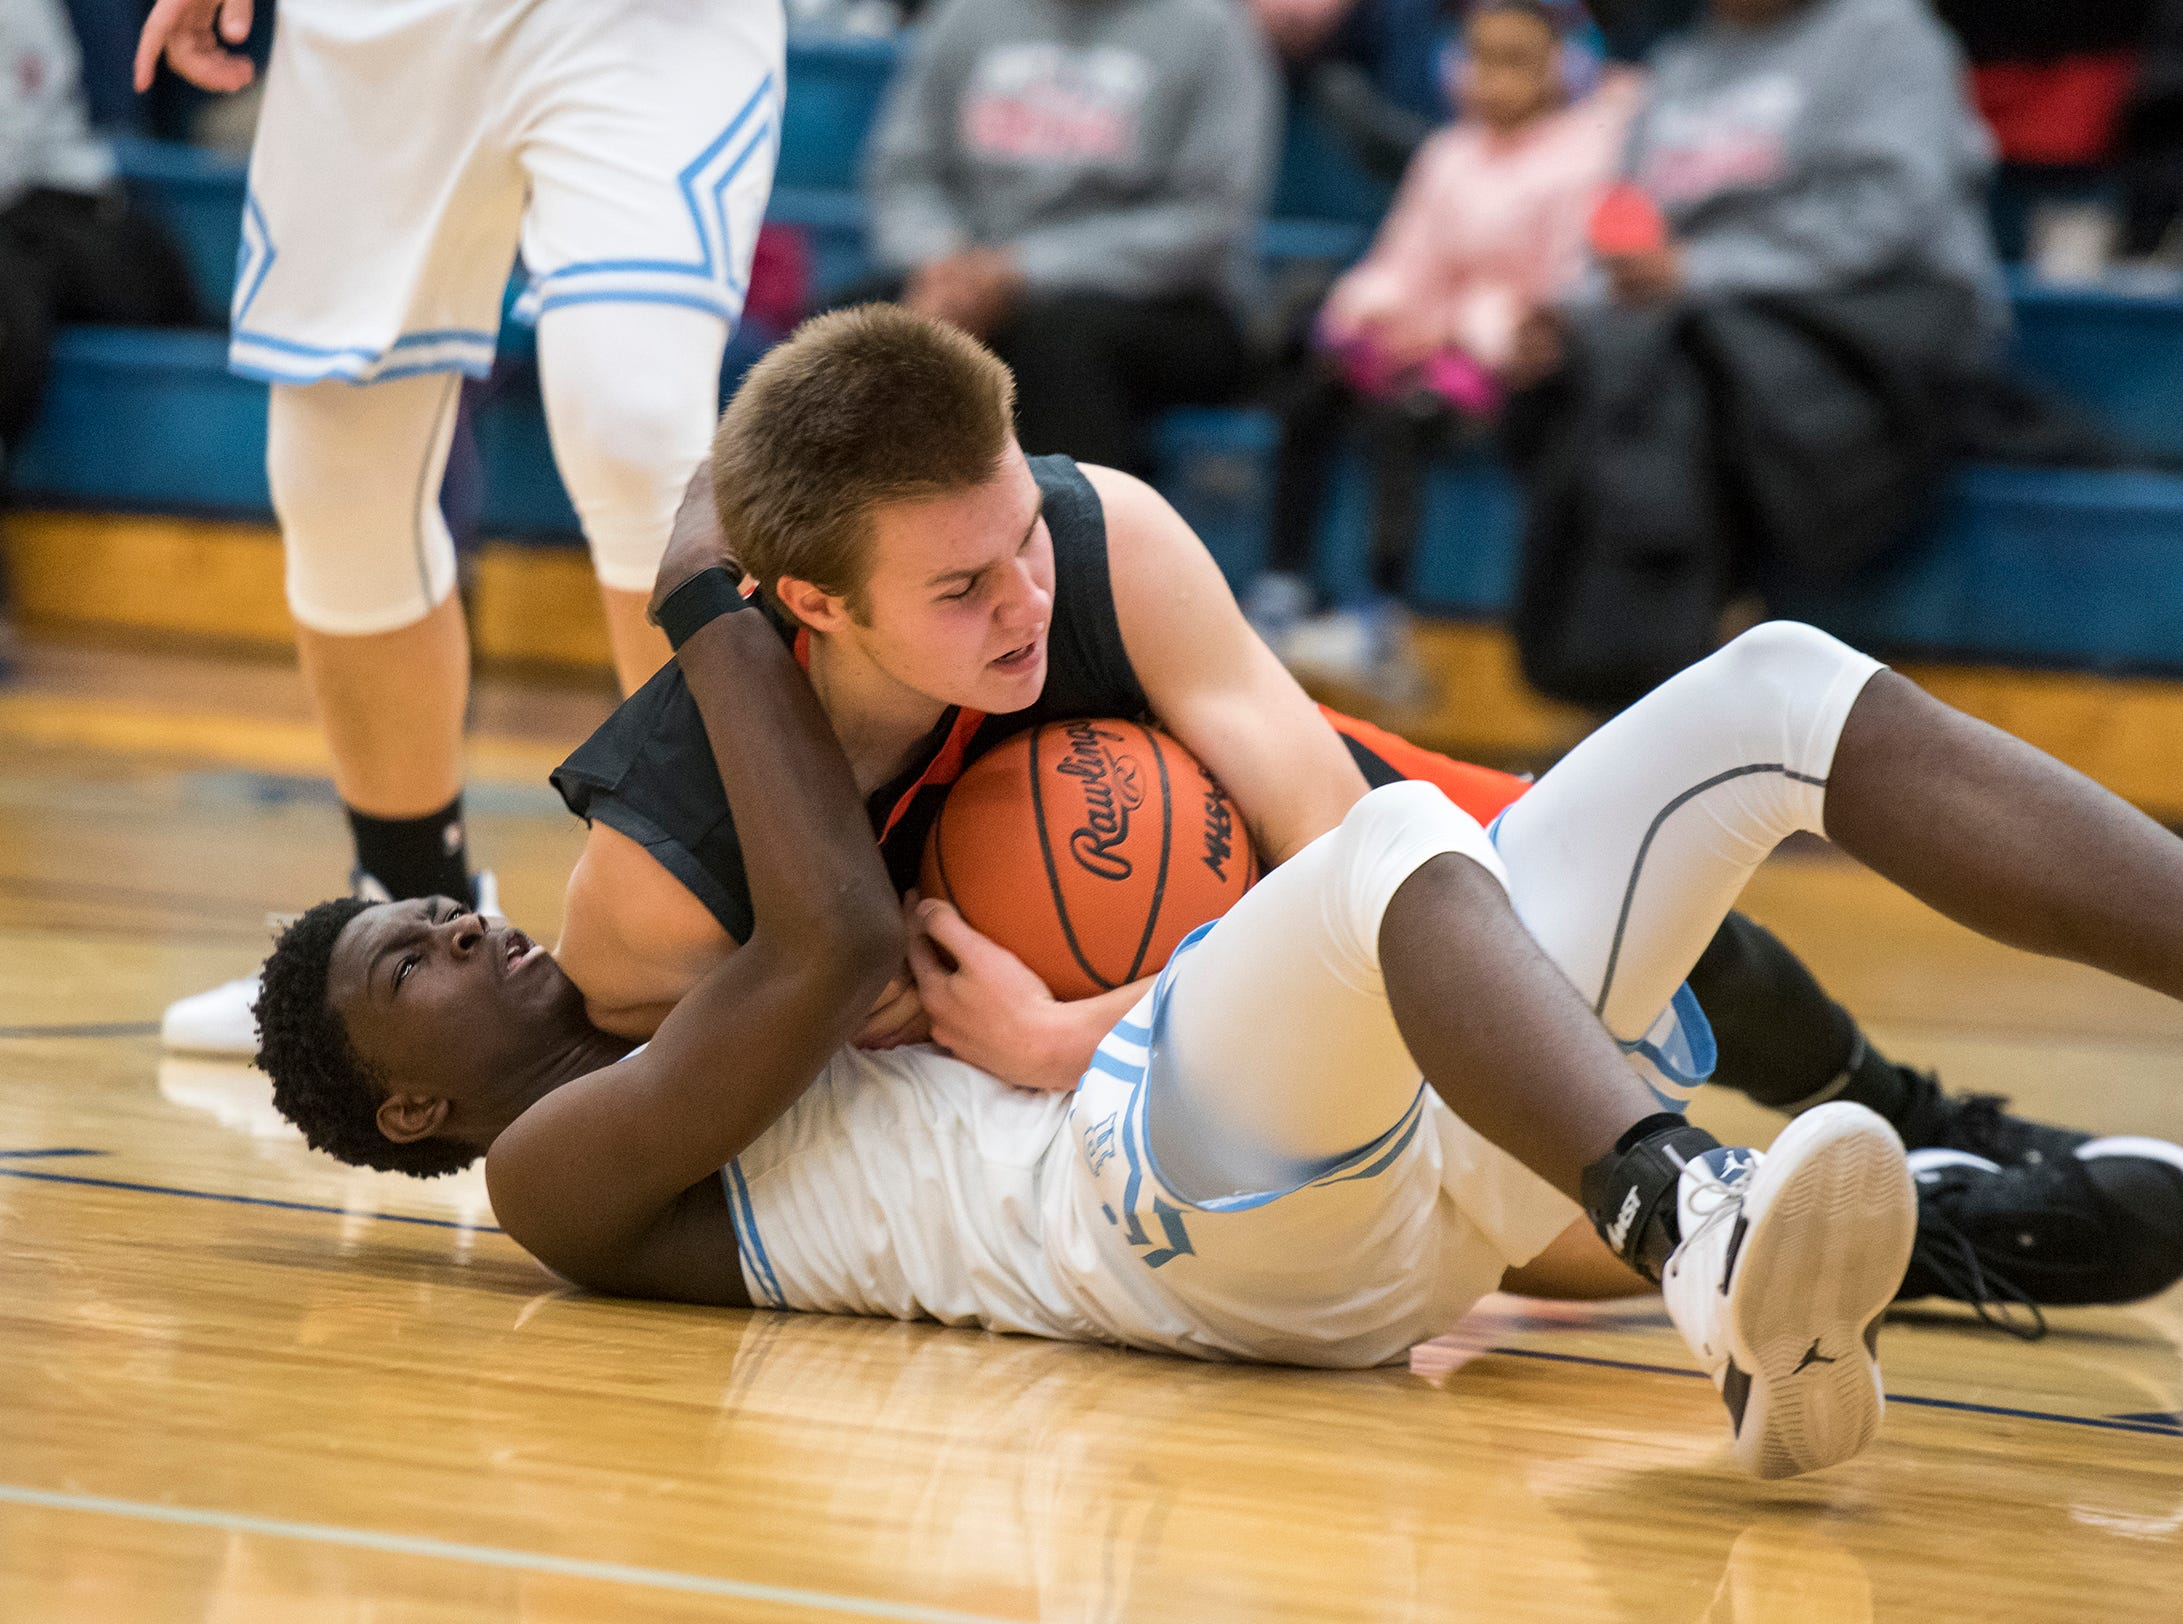 RIchmond guard Daveyon Henderson (bottom) fights with Almont guard Atte Vuoristo for the ball during their basketball game Friday, Feb. 15, 2019 at Richmond High School.